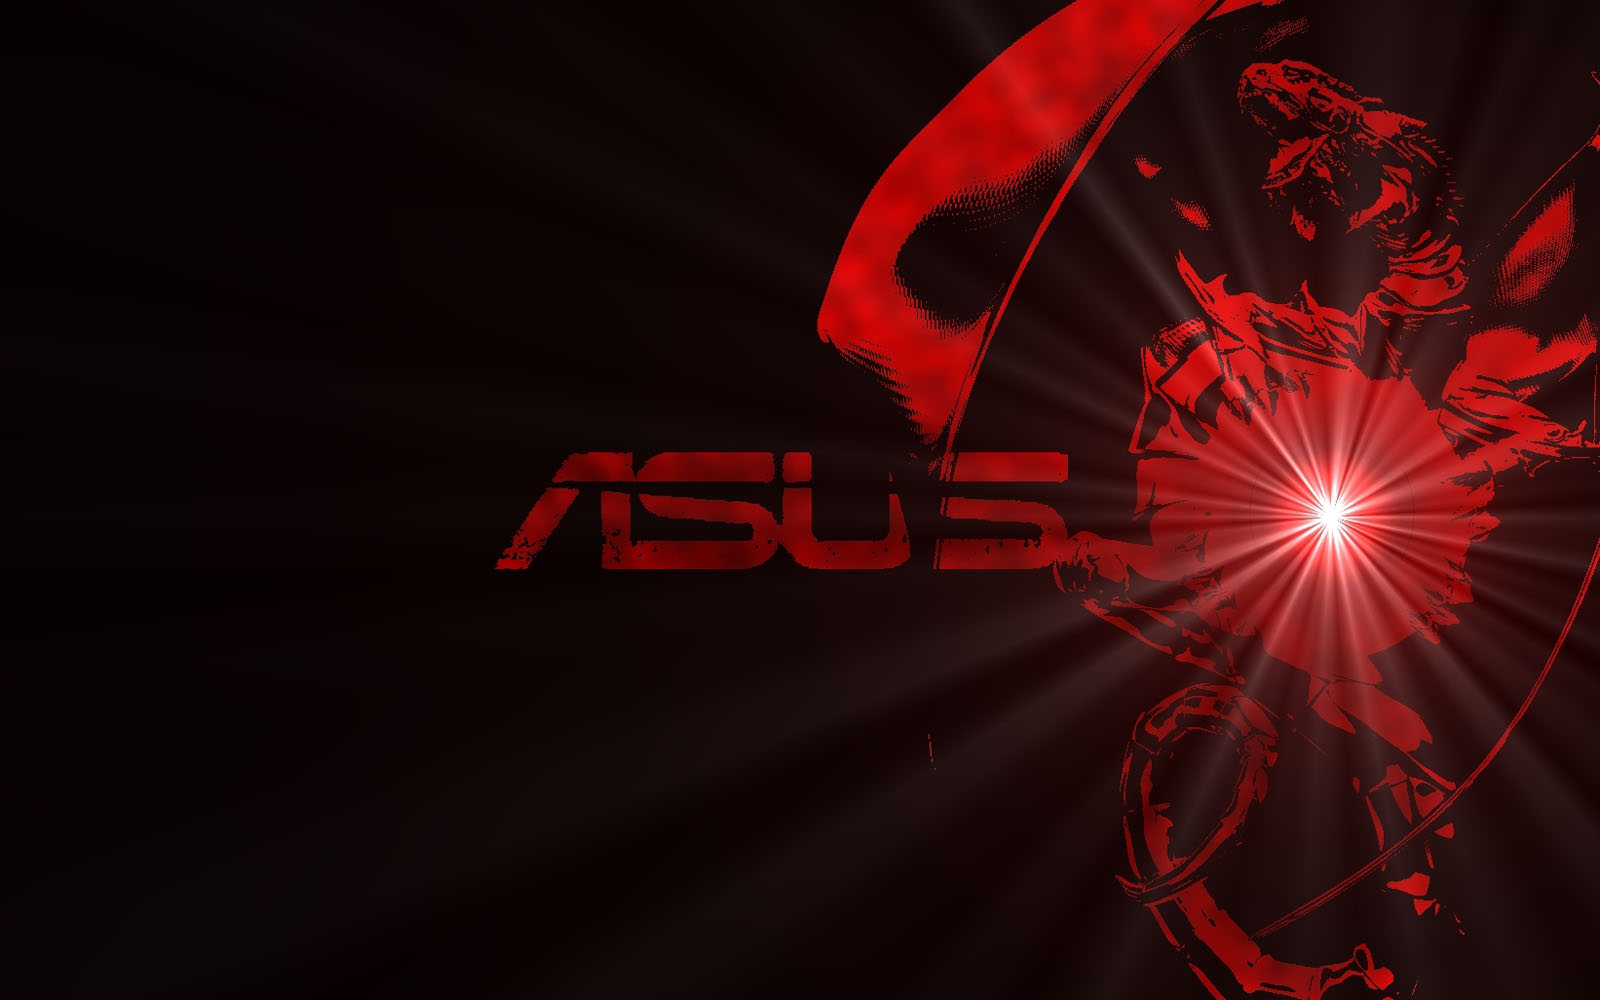 Download 780 Wallpaper Asus Bunga HD Paling Keren